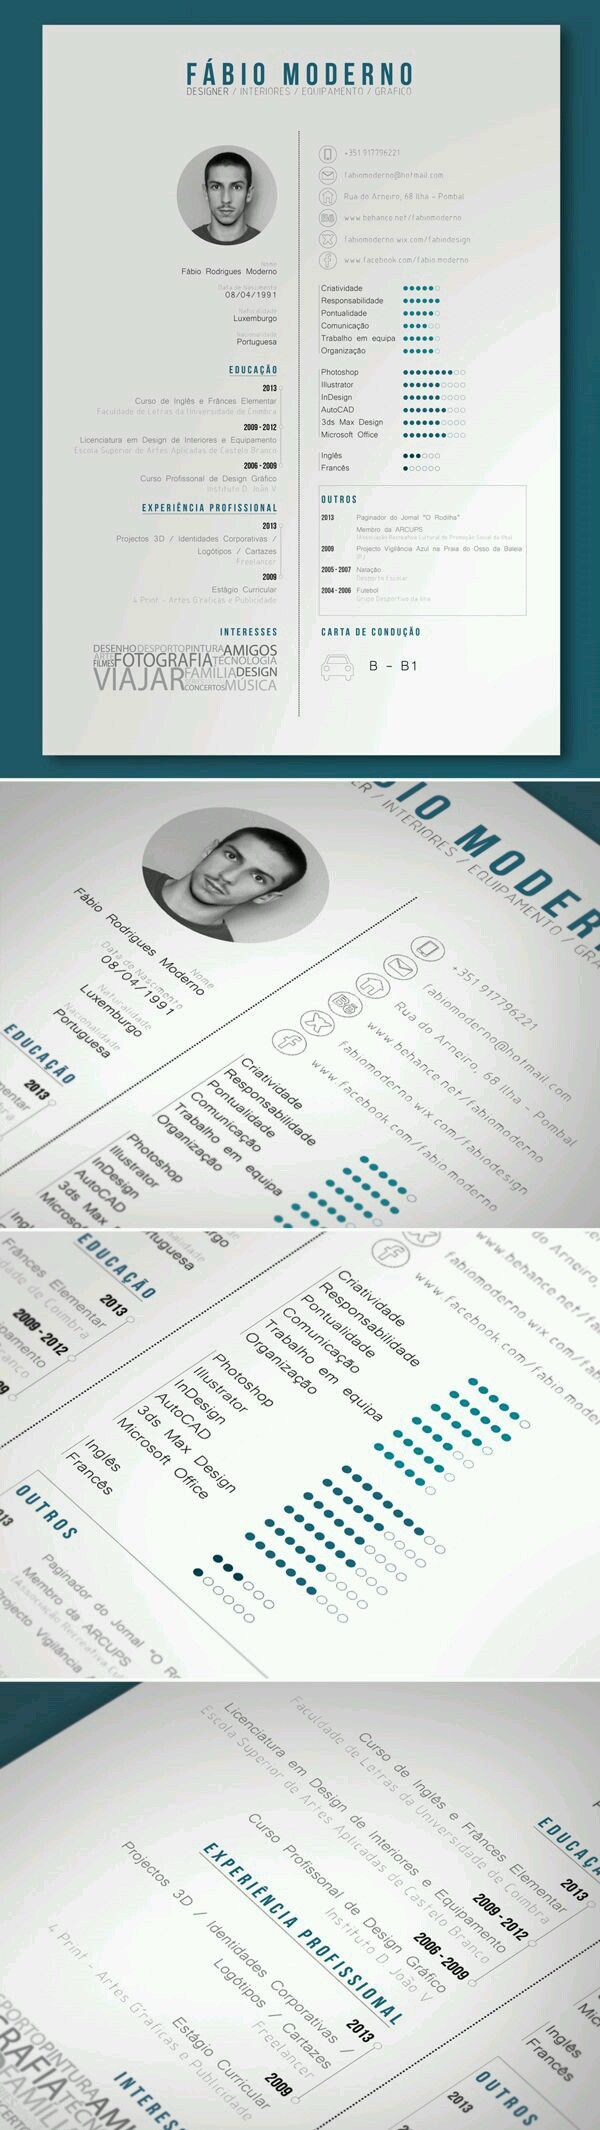 130 best CV images on Pinterest | Resume ideas, Cv design and Resume ...